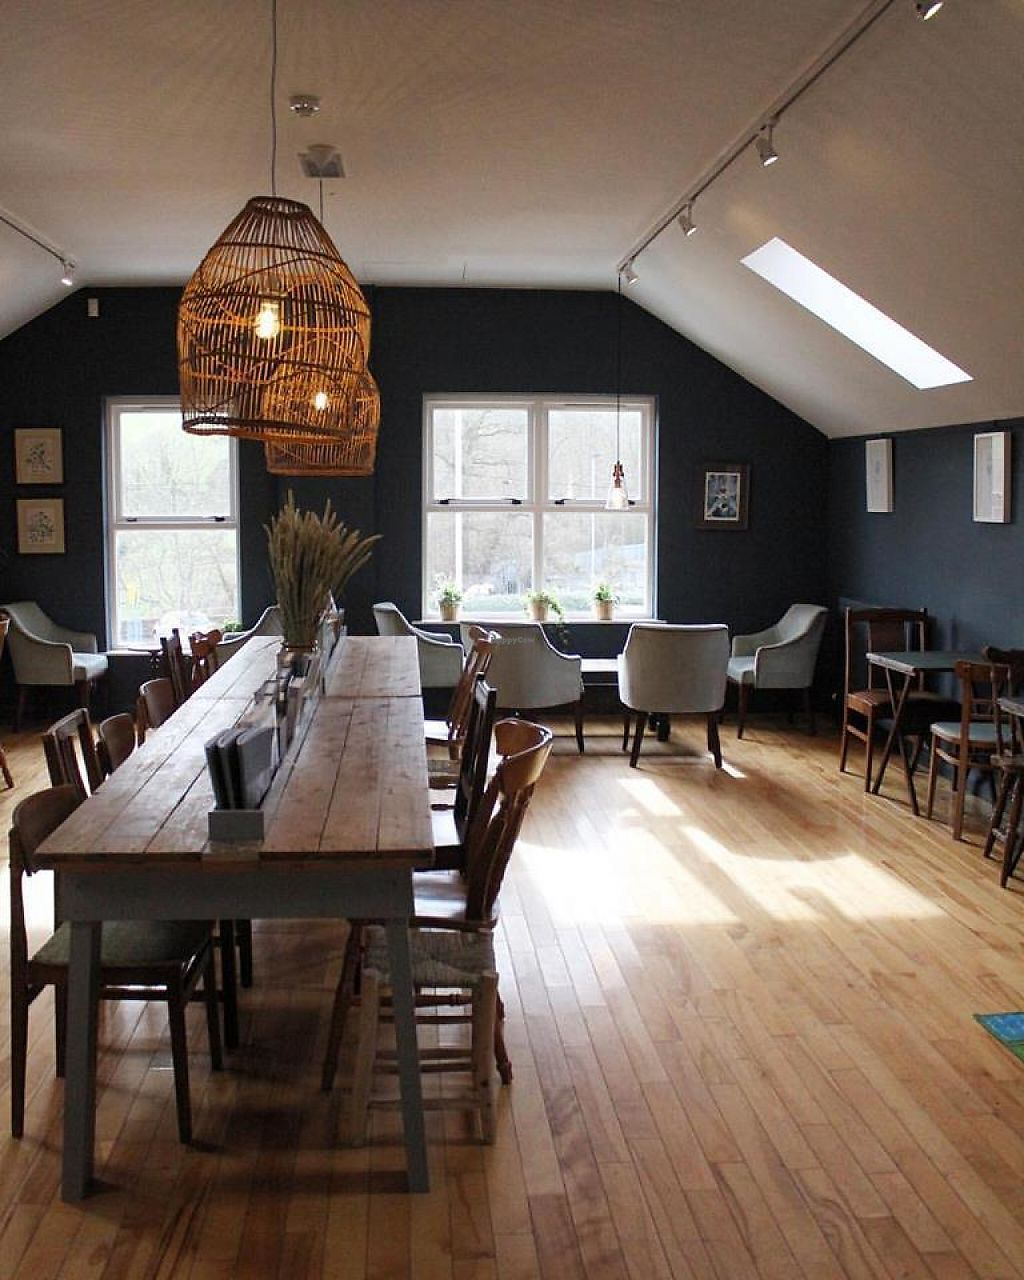 """Photo of Ursa Minor Bakehouse   by <a href=""""/members/profile/community4"""">community4</a> <br/>Ursa Minor Bakehouse  <br/> May 7, 2017  - <a href='/contact/abuse/image/75820/256790'>Report</a>"""